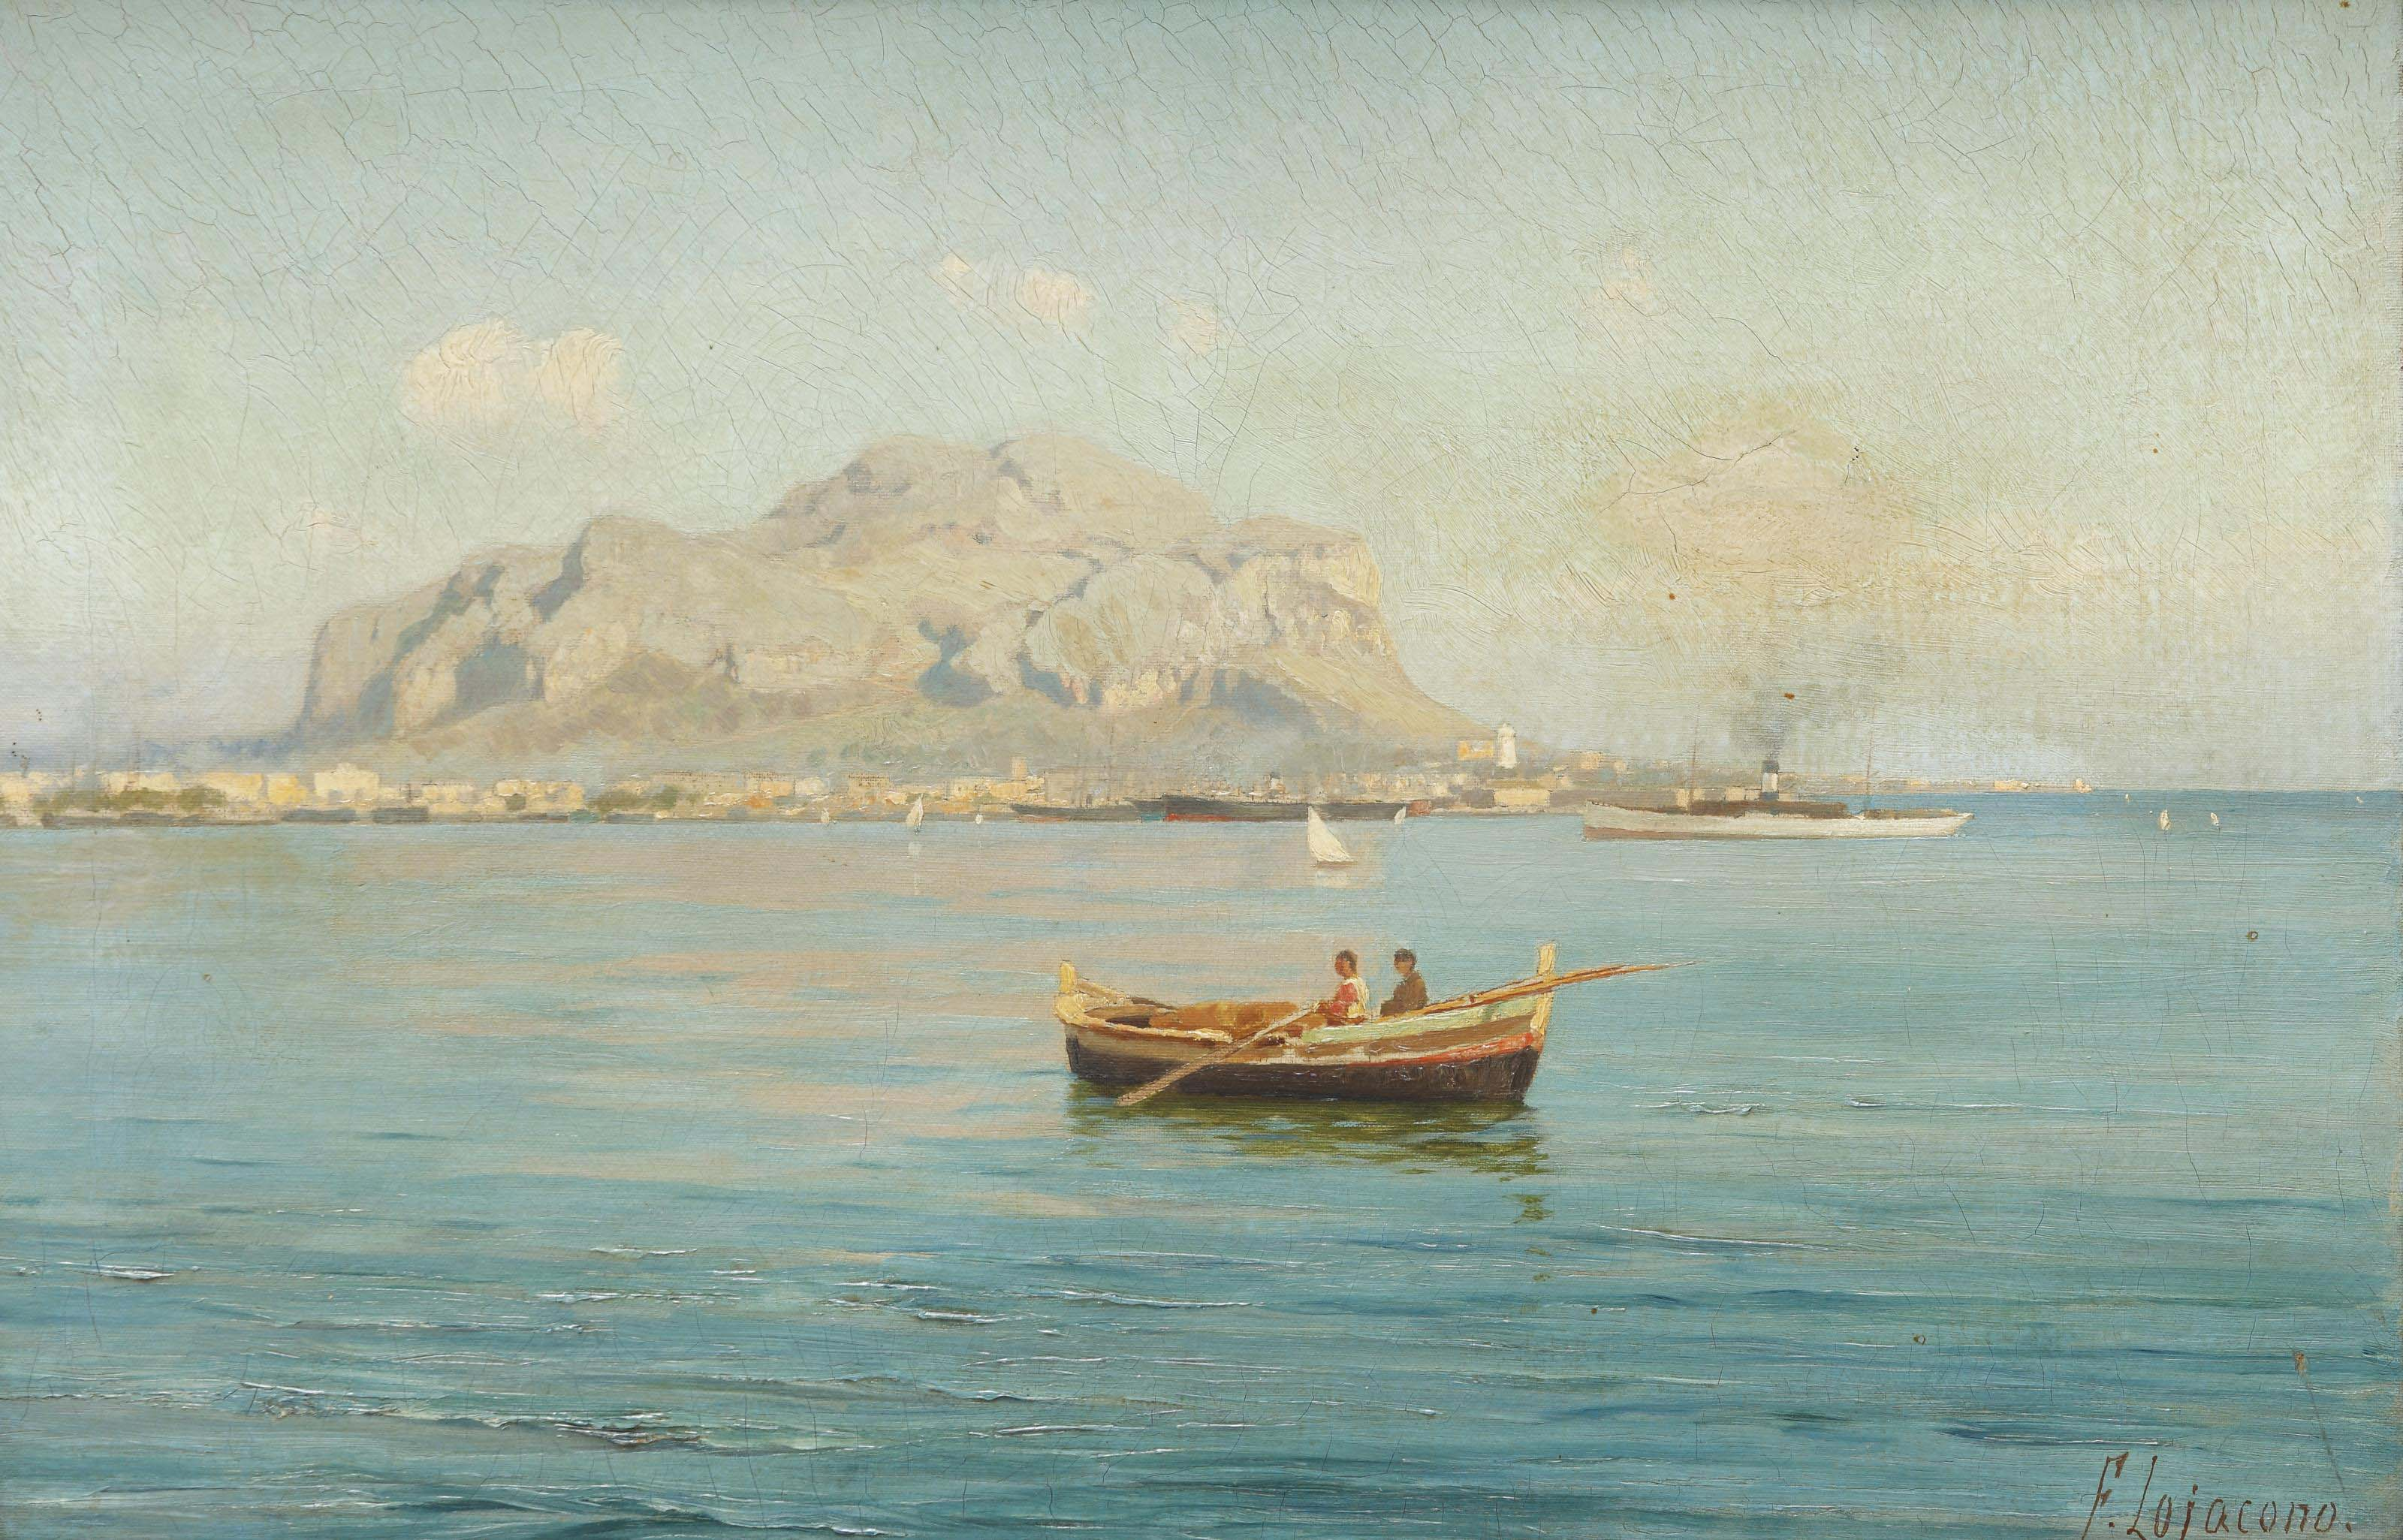 The bay of Palermo, with the Mount Pellegrino in the distance